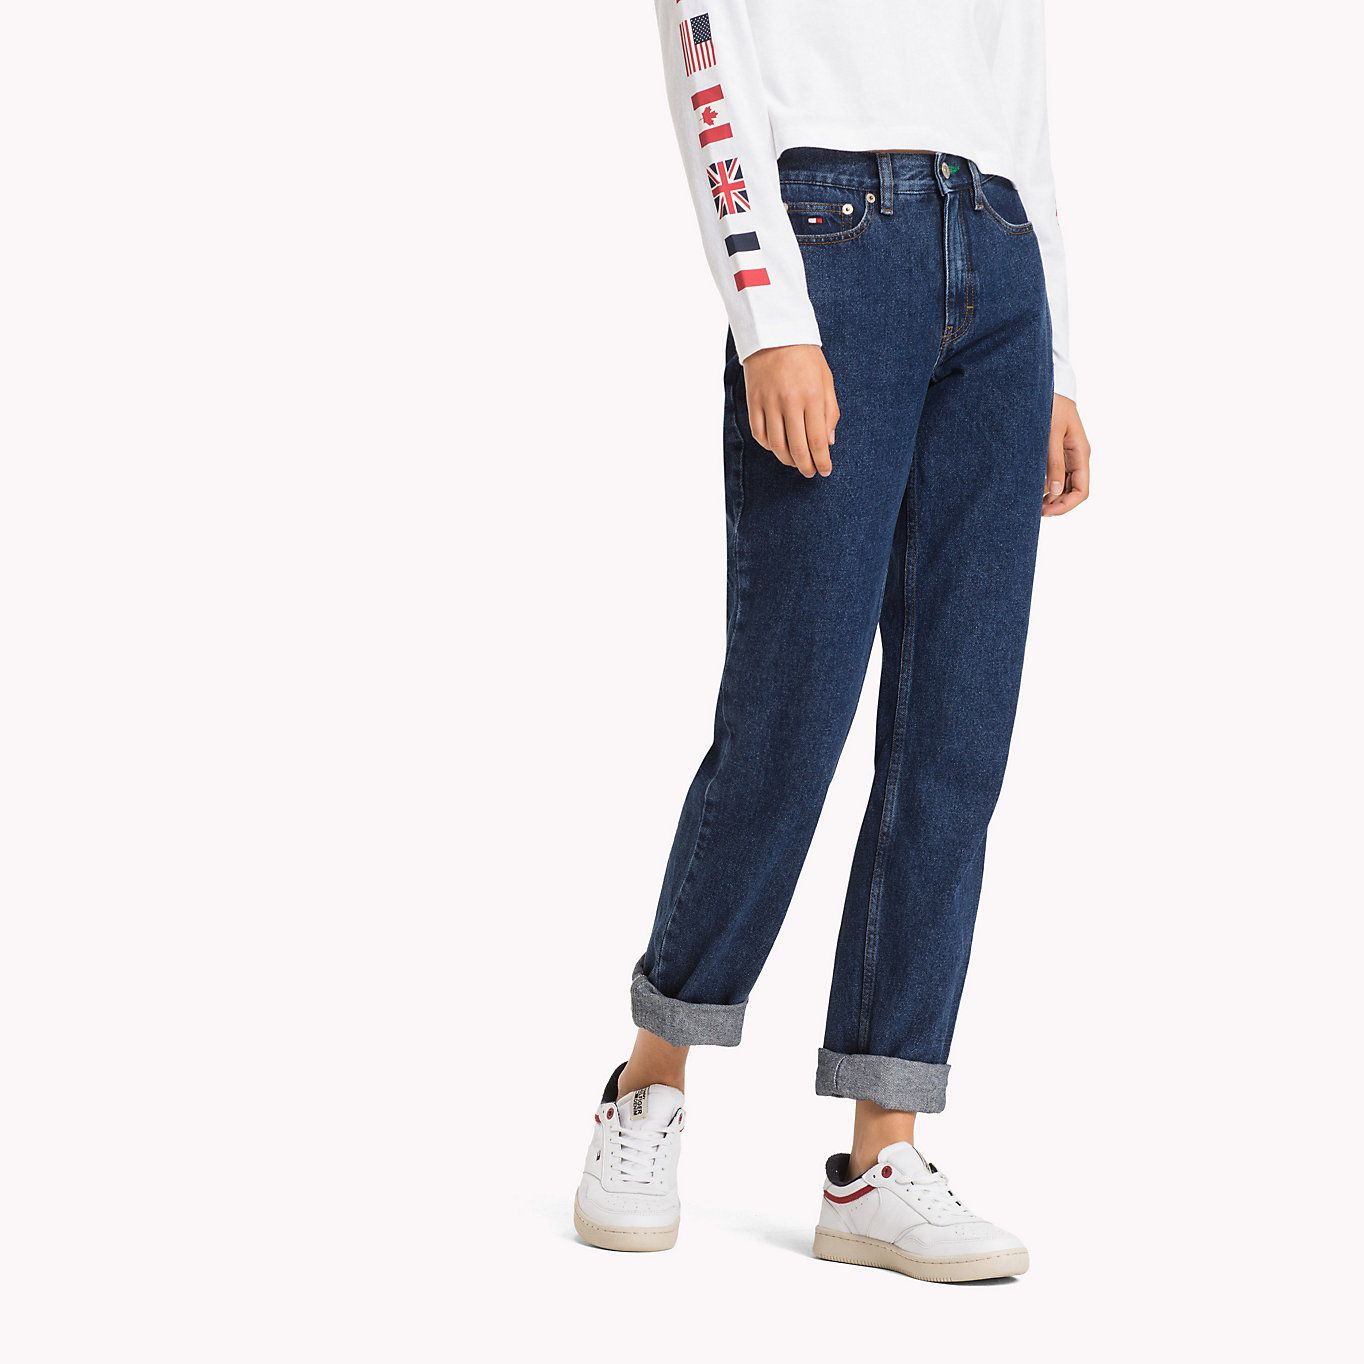 Image for Tapered Fit Jeans from TommyUK Jeans fit